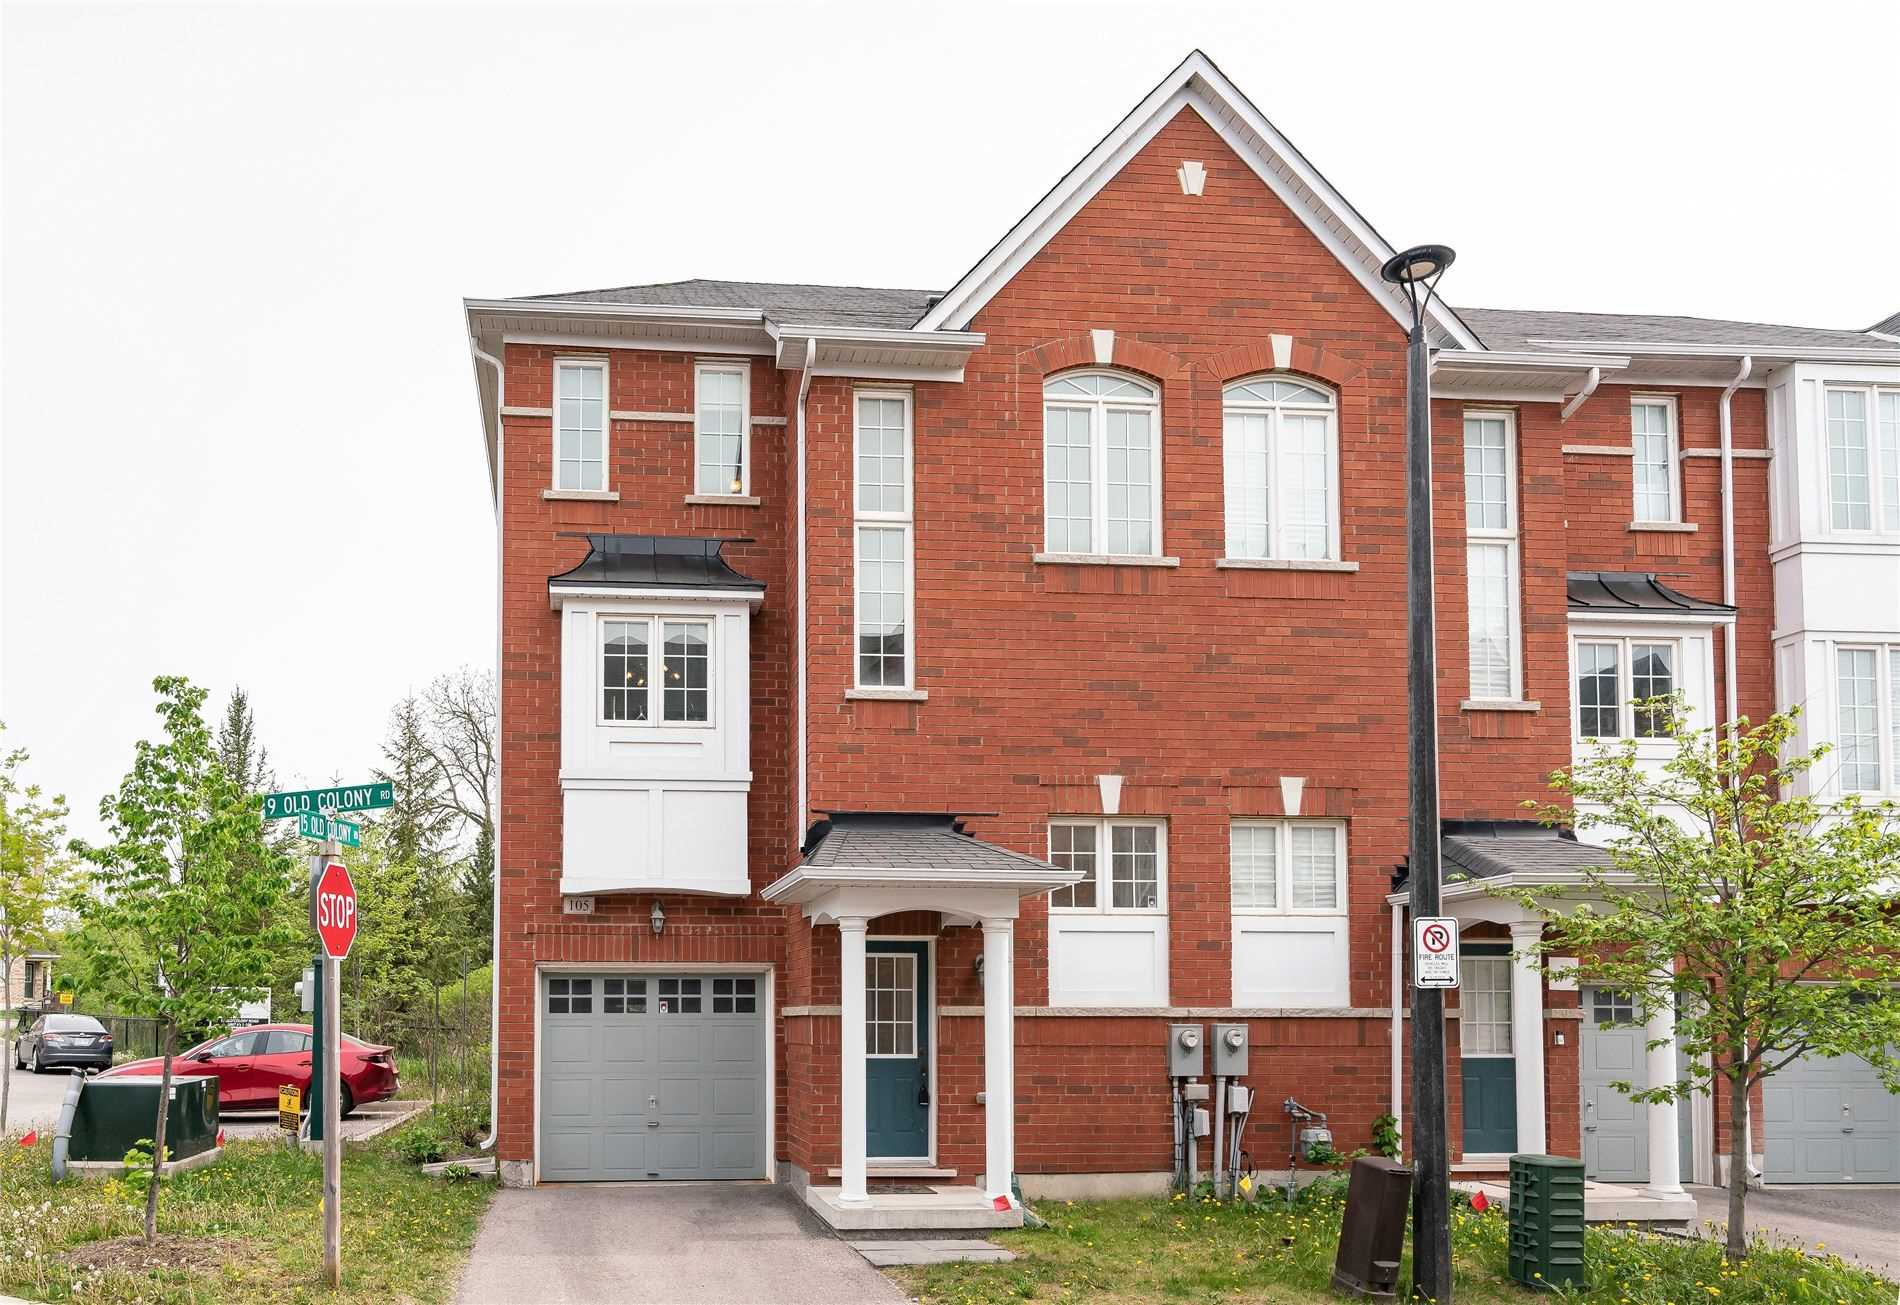 pictures of house for sale MLS: N5247396 located at 9 Old Colony Rd, Richmond Hill L4E4L5